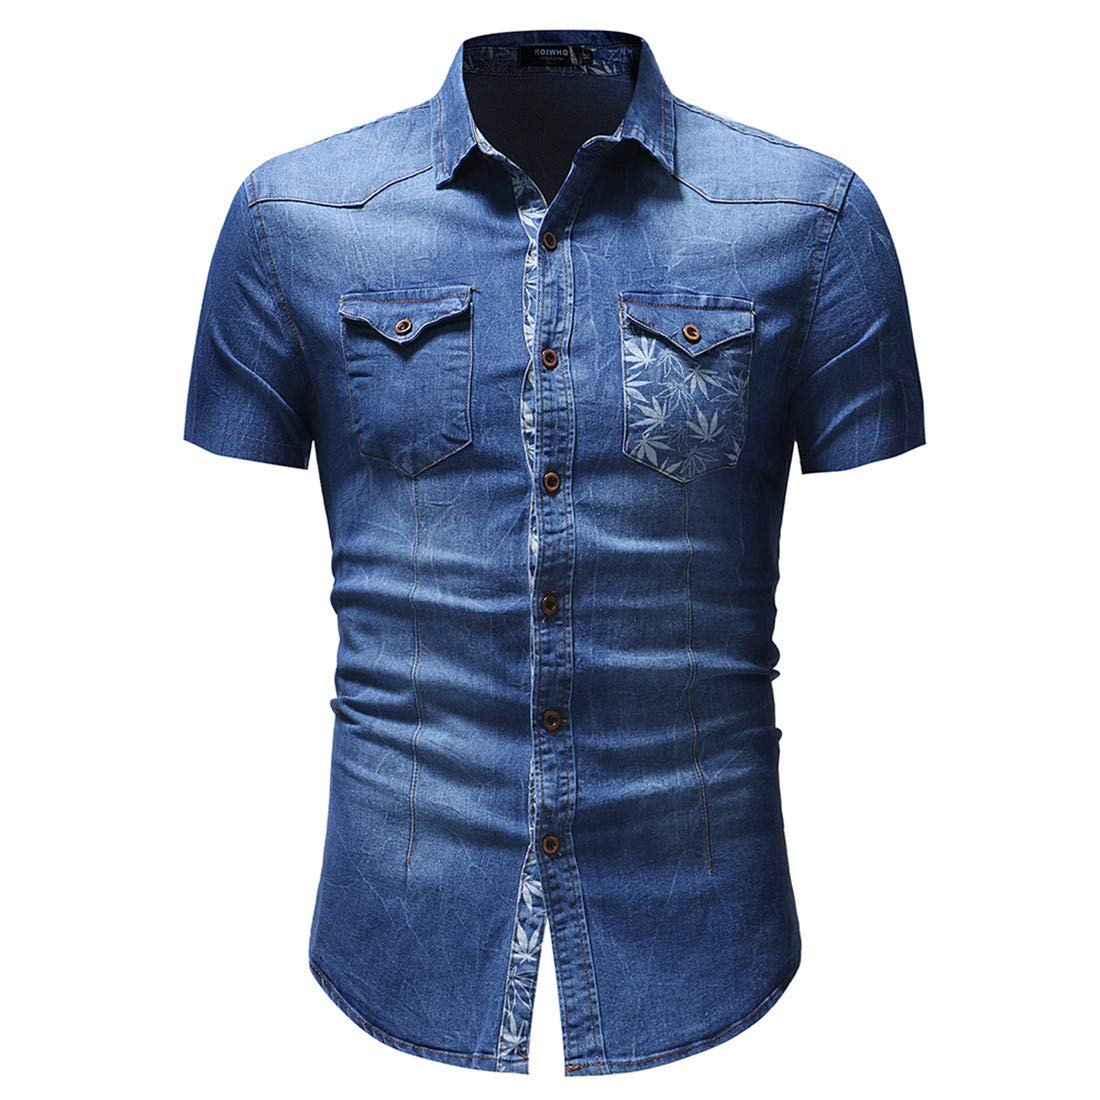 ONLYWOOD Mens Short Sleeve Printed Button Down Causal Slim Fit Denim Shirts